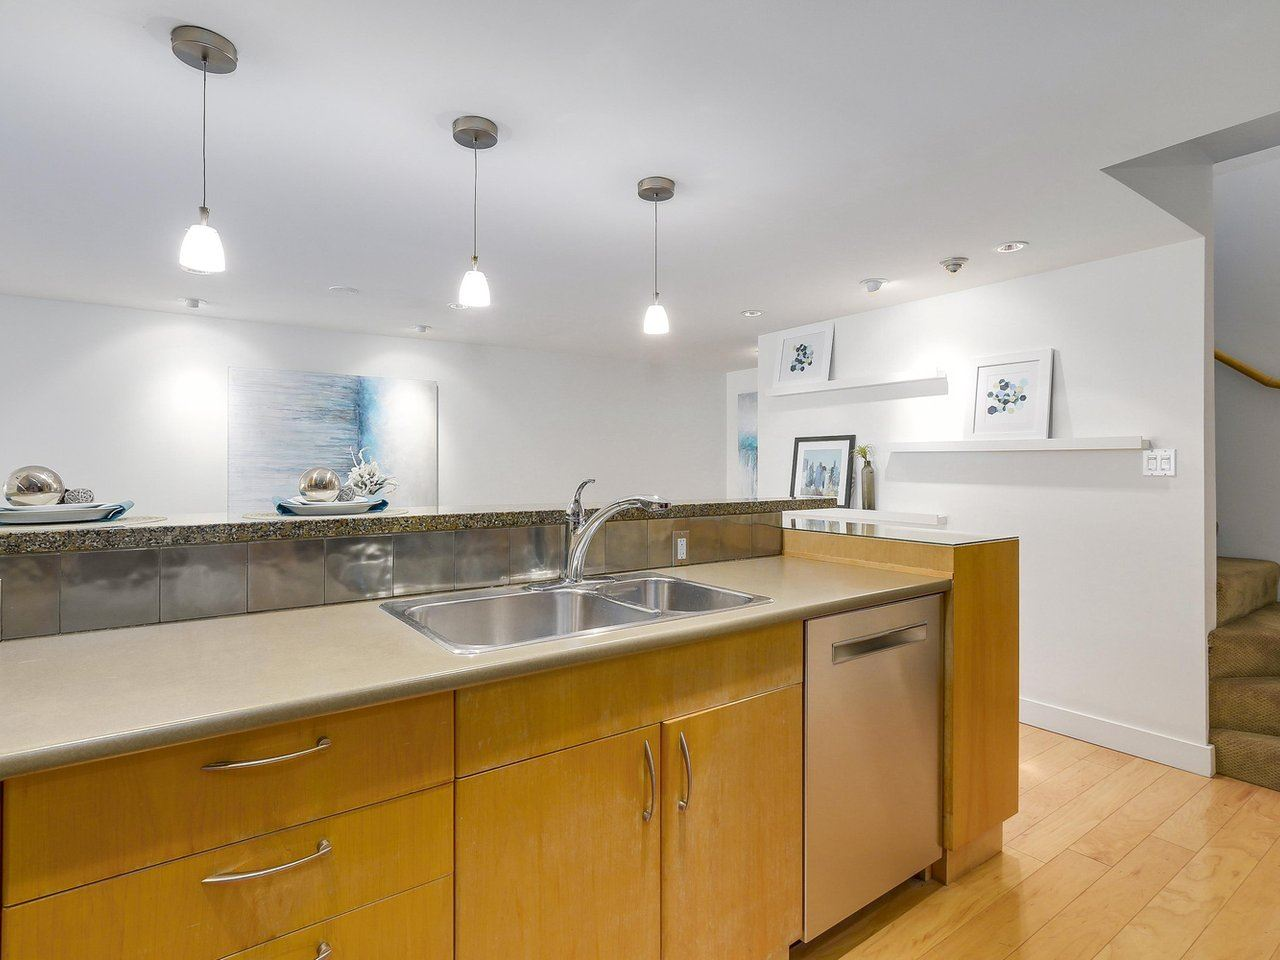 "Photo 12: 2411 W 1ST Avenue in Vancouver: Kitsilano Townhouse for sale in ""Bayside Manor"" (Vancouver West)  : MLS® # R2191405"